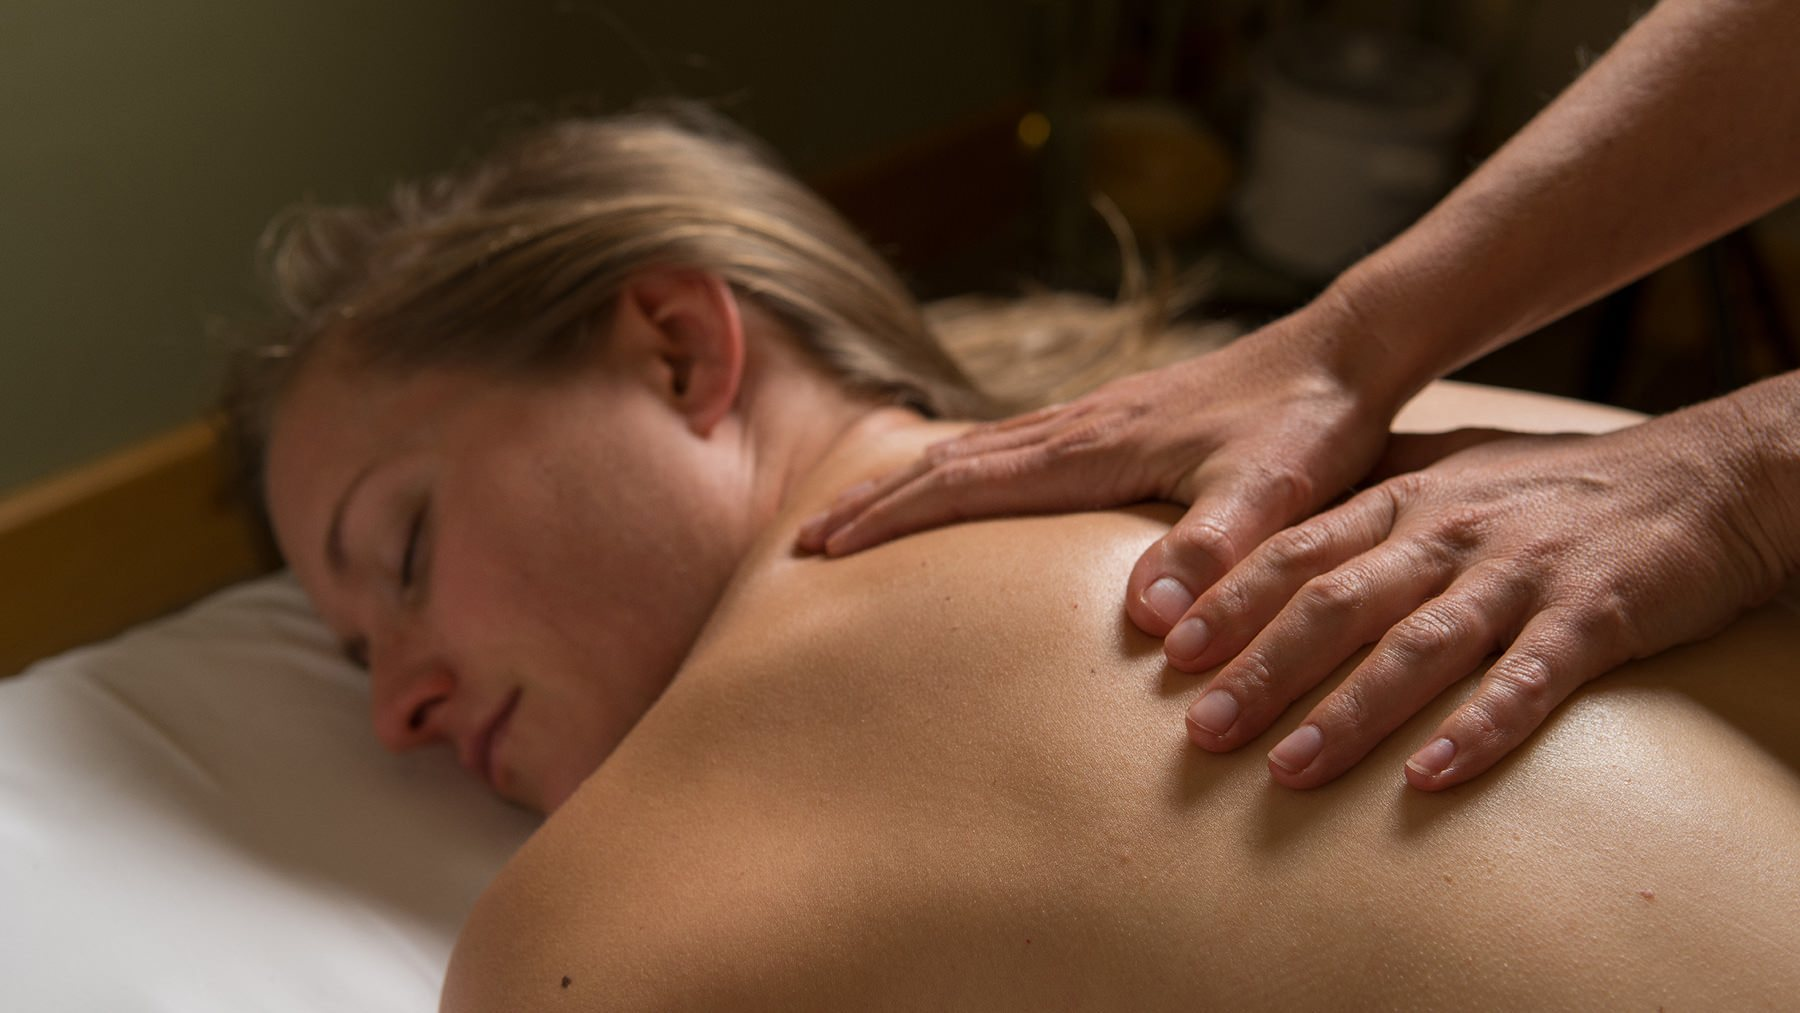 Therapeutic Massage in North Lake Tahoe at The Sanctuary